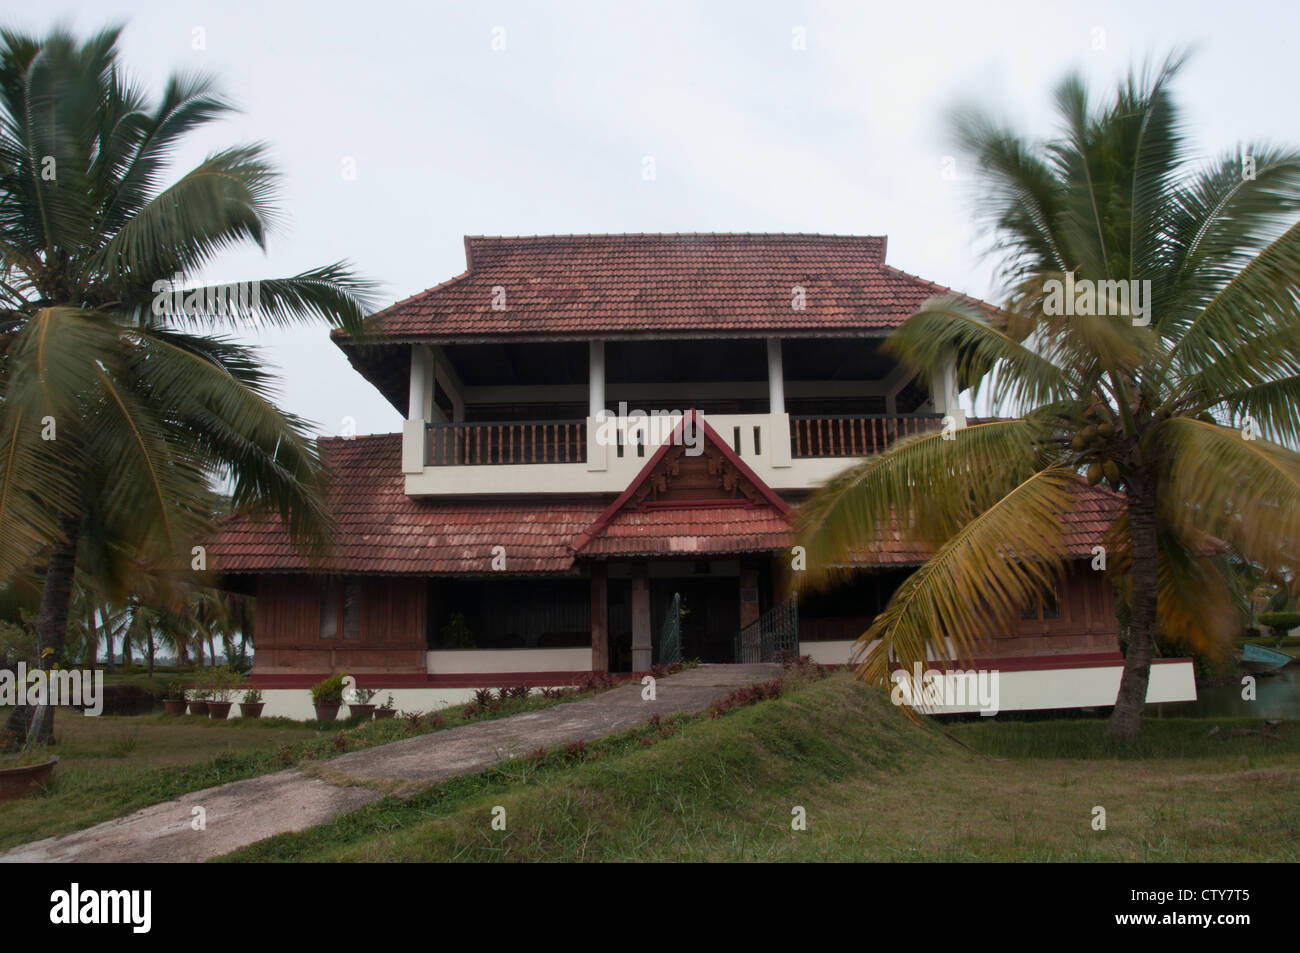 Tharavadu the traditional wooden cottages of kerala for South indian home images